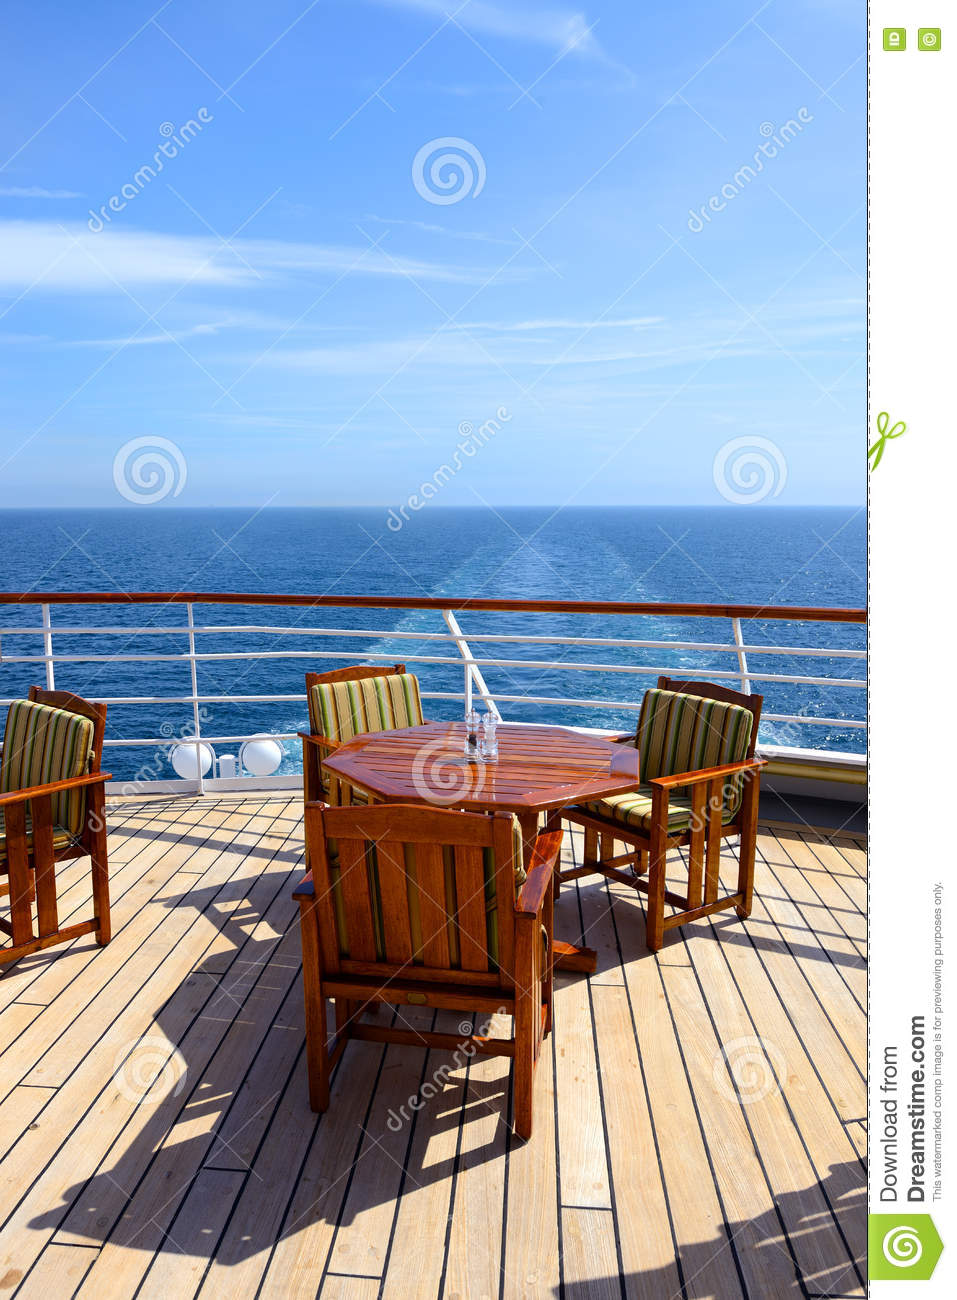 Empty Wooden Deck Chairs And Table On Ship Stock Image ...